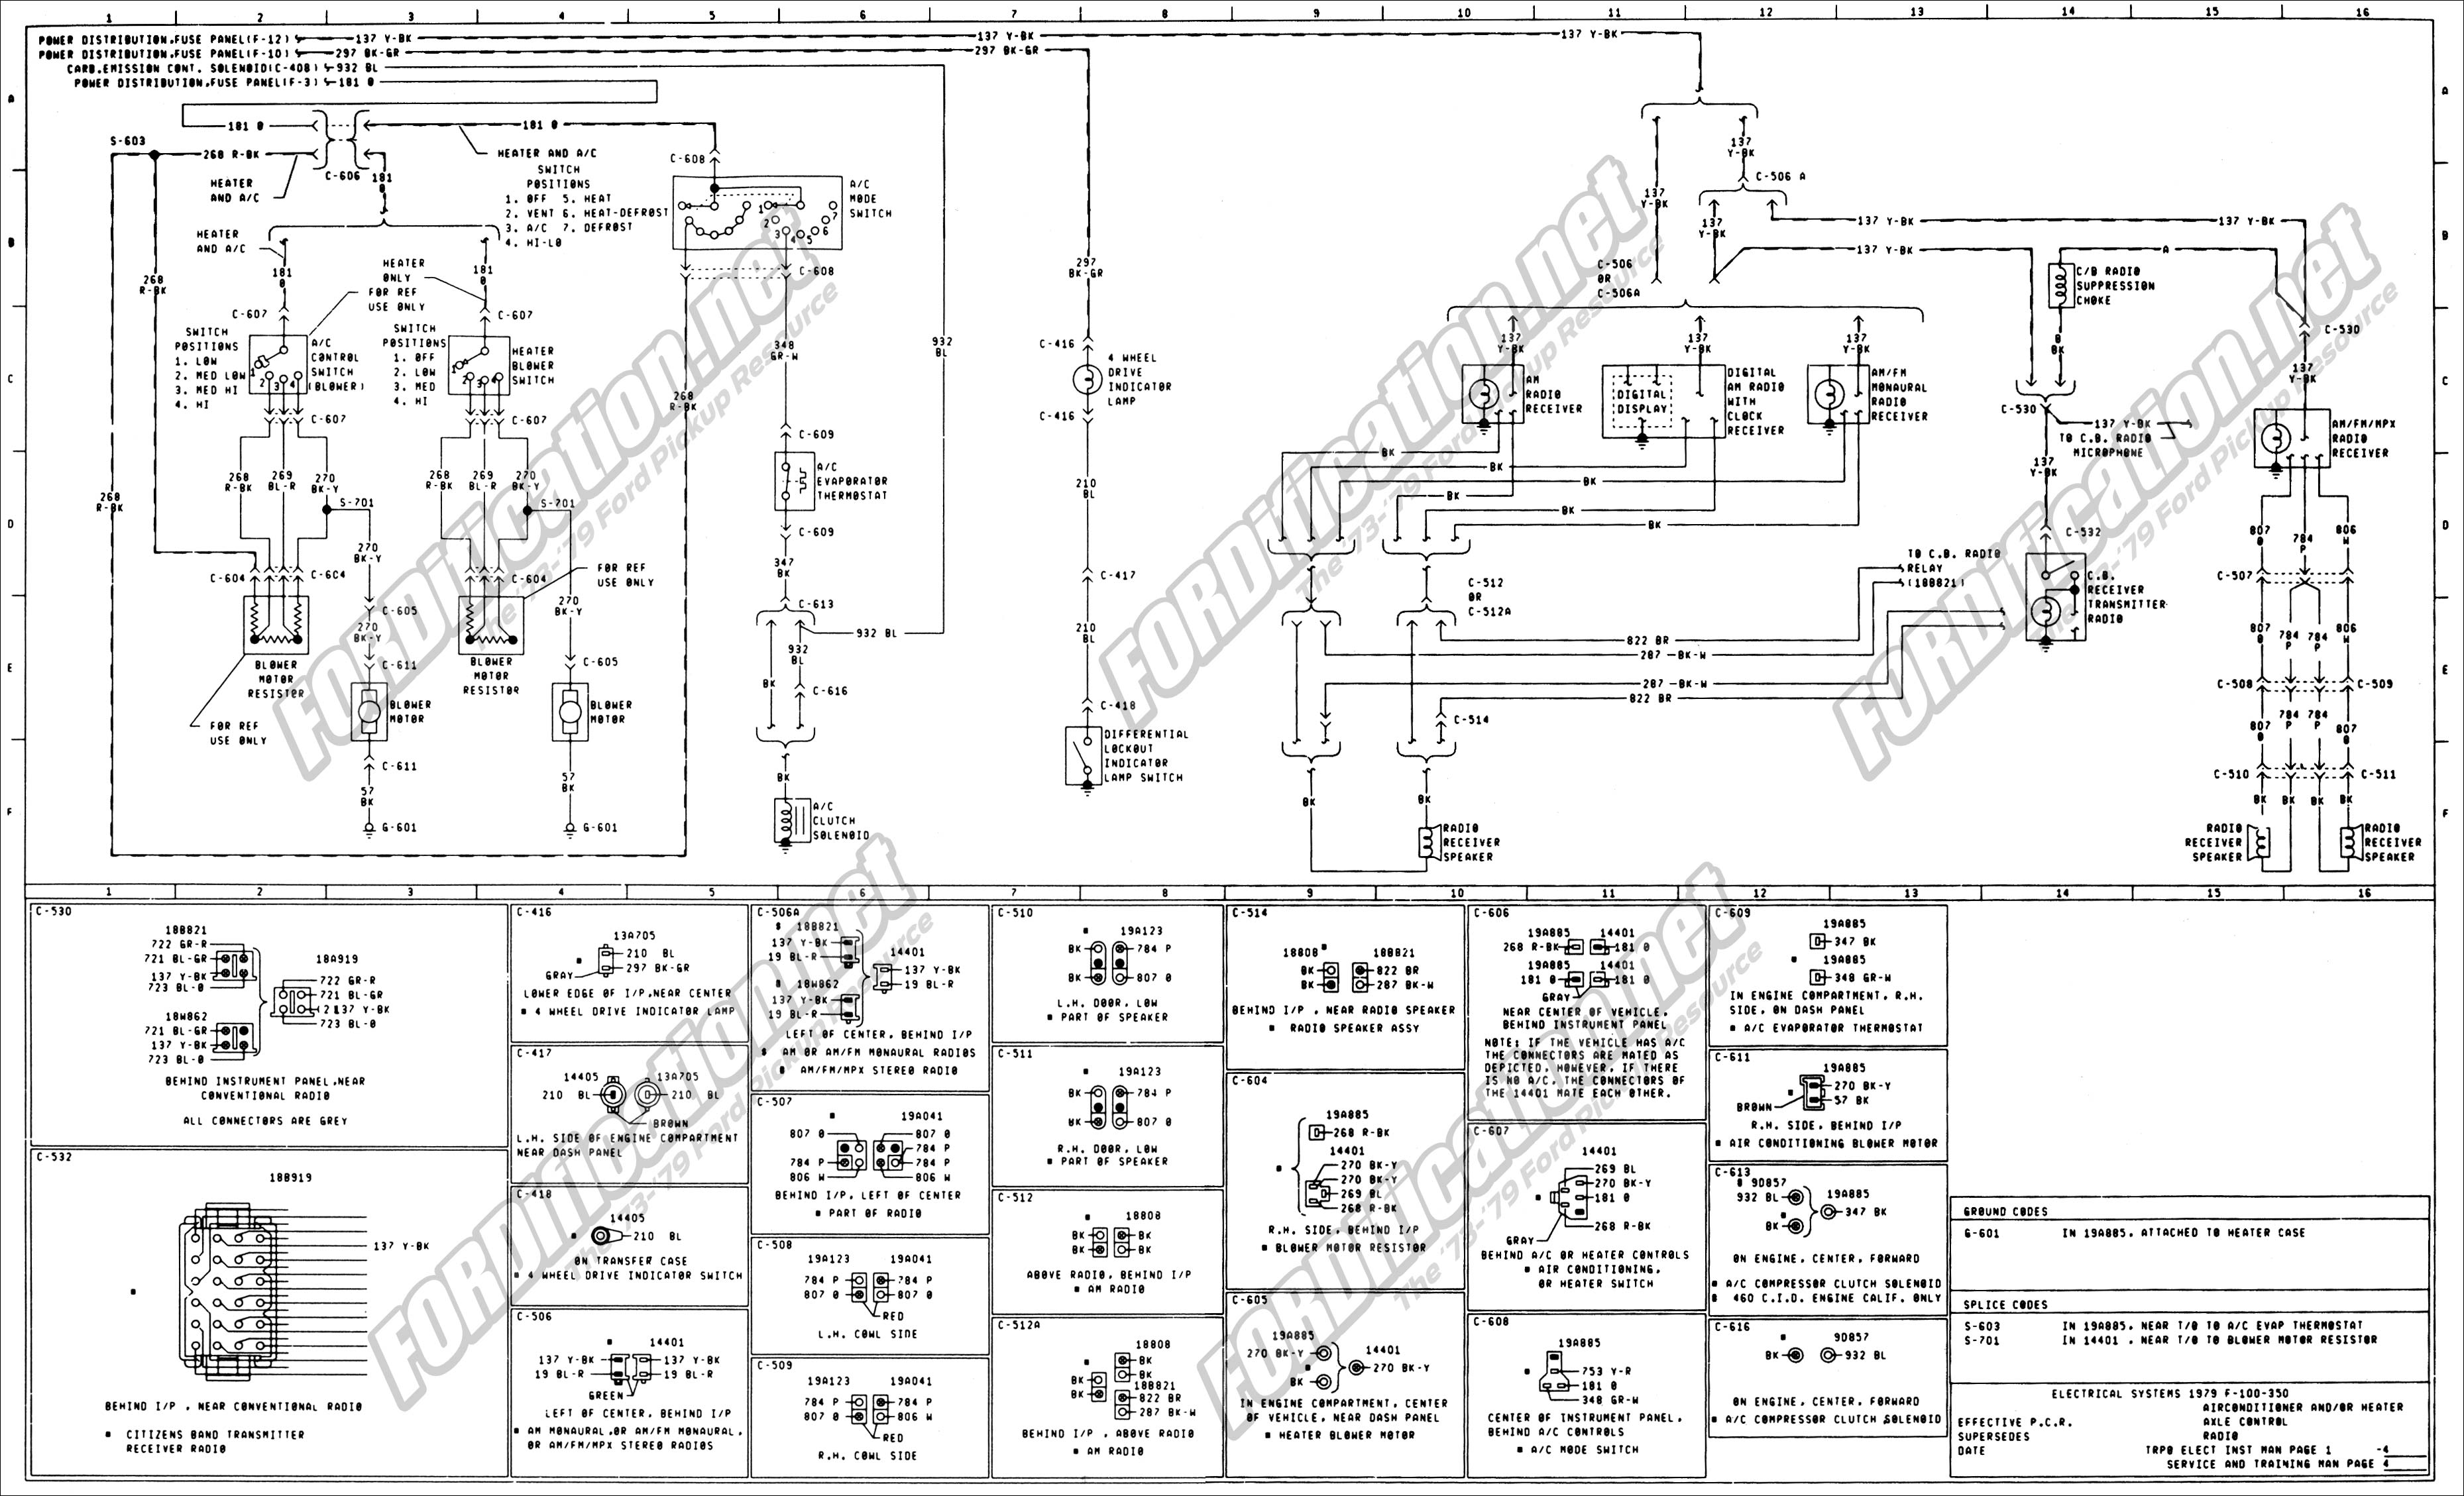 wiring_79master_4of9 1973 1979 ford truck wiring diagrams & schematics fordification net 1968 Ford Falcon Wiring Diagram at panicattacktreatment.co